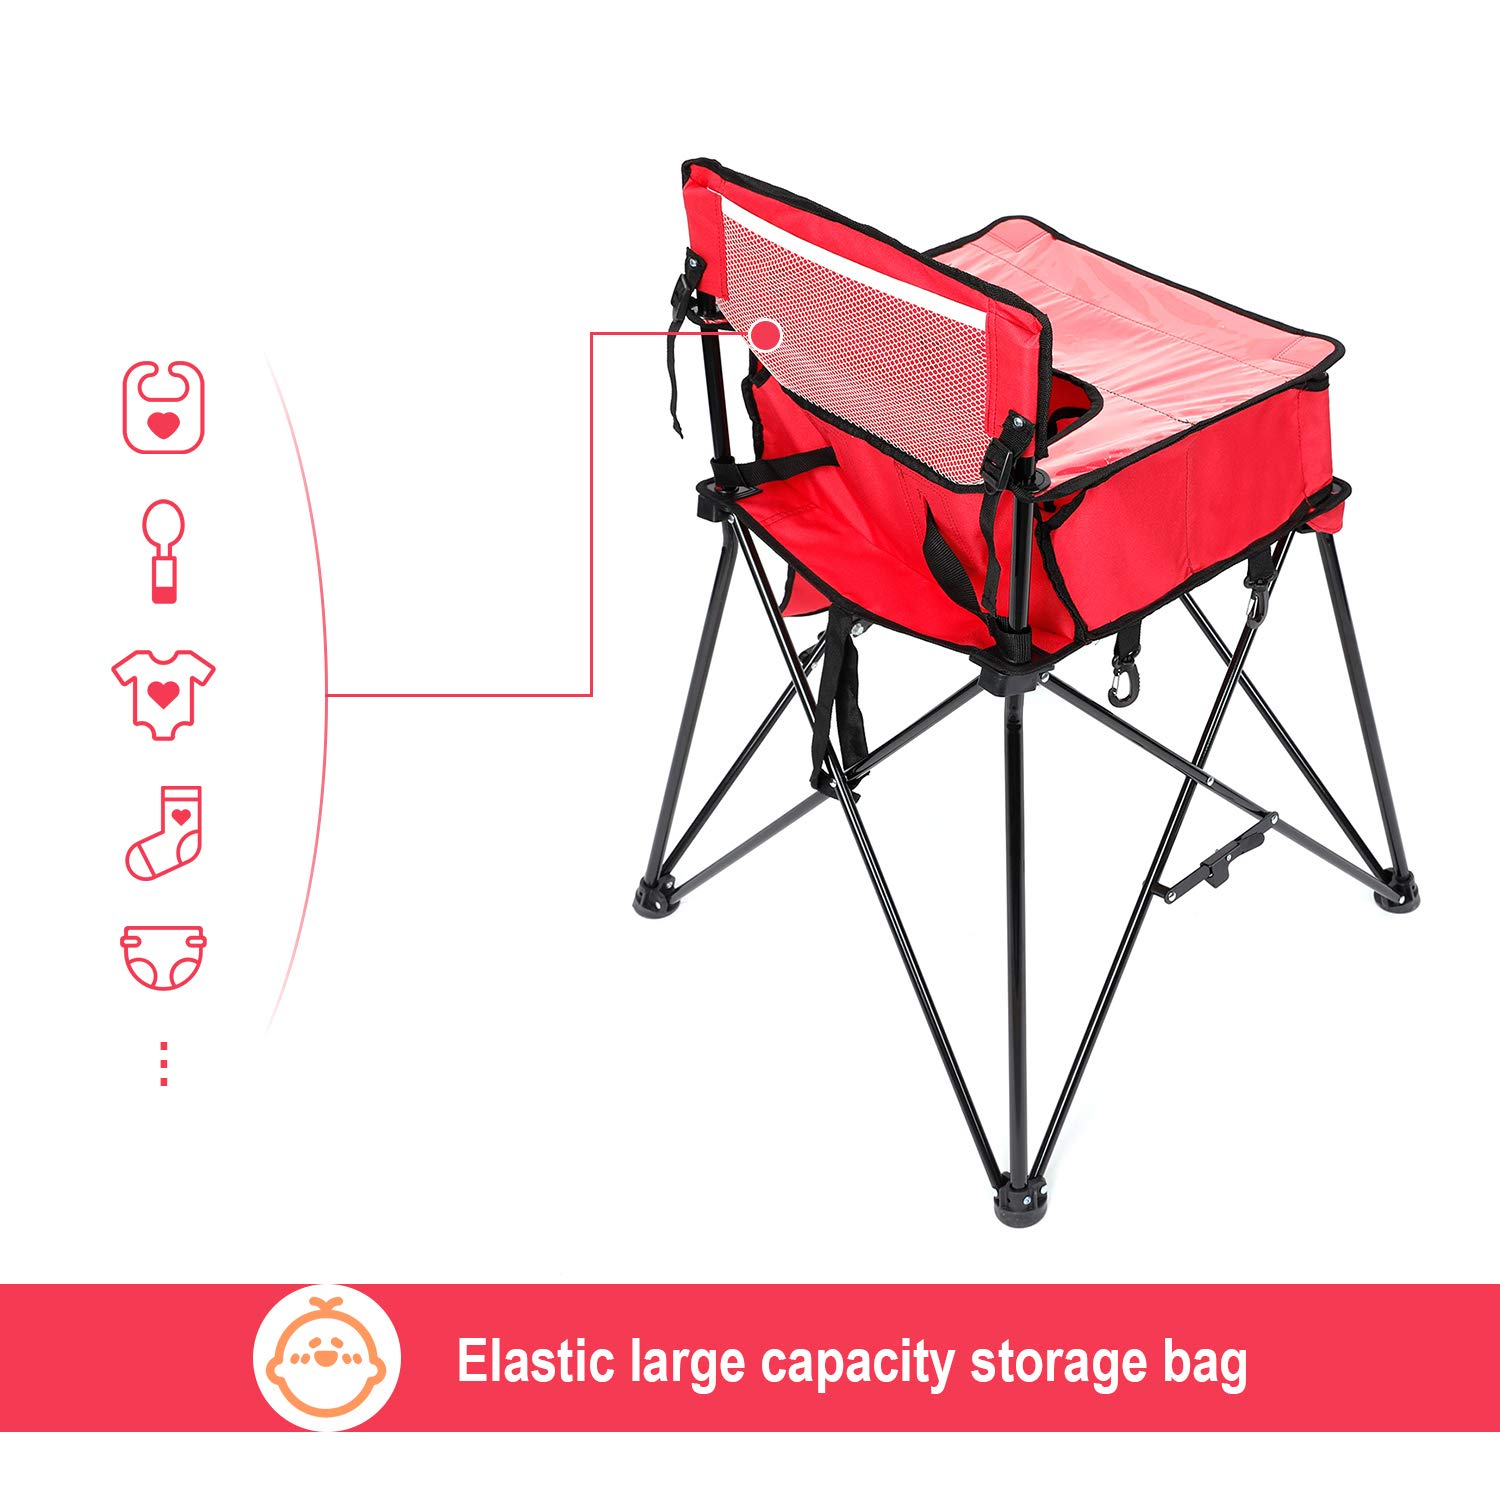 VEEYOO Baby Portable High Chair for Travel Machine Washable Baby Highchair for Eating Foldable Highchair with Tray for Baby Toddler Red